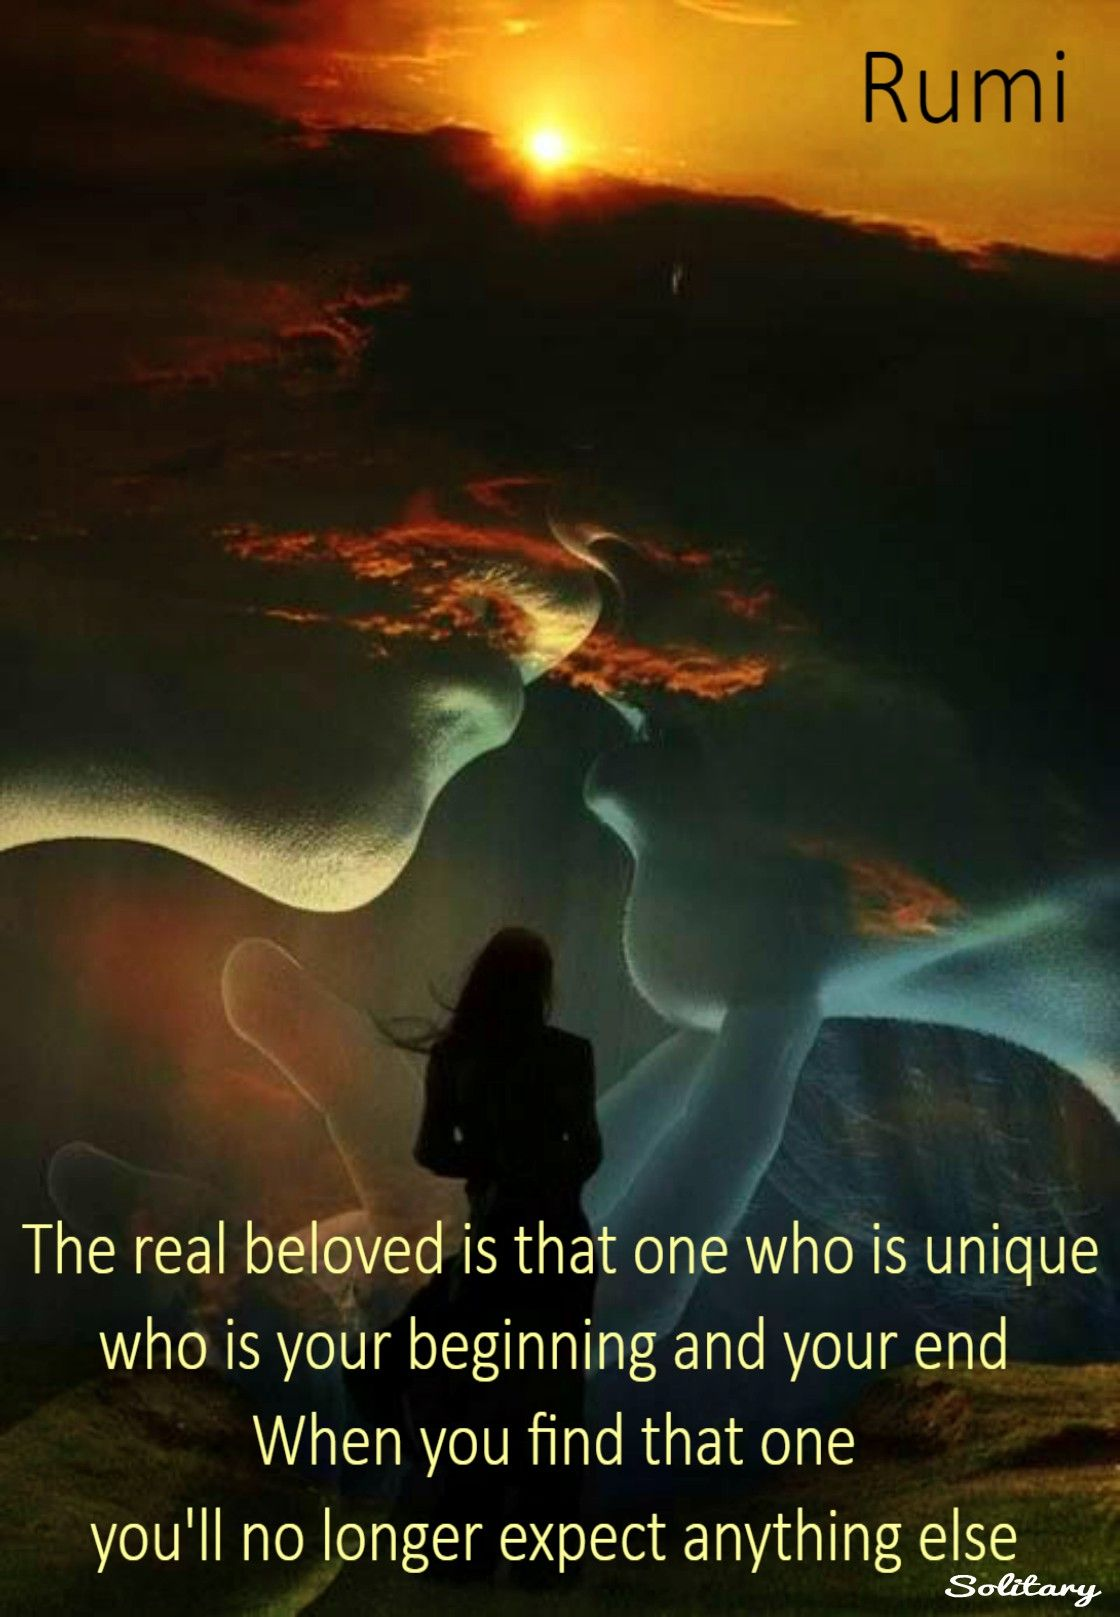 Rumi Love Quotes I Found You Love. Sufism & Love  Pinterest  Rumi Poetry